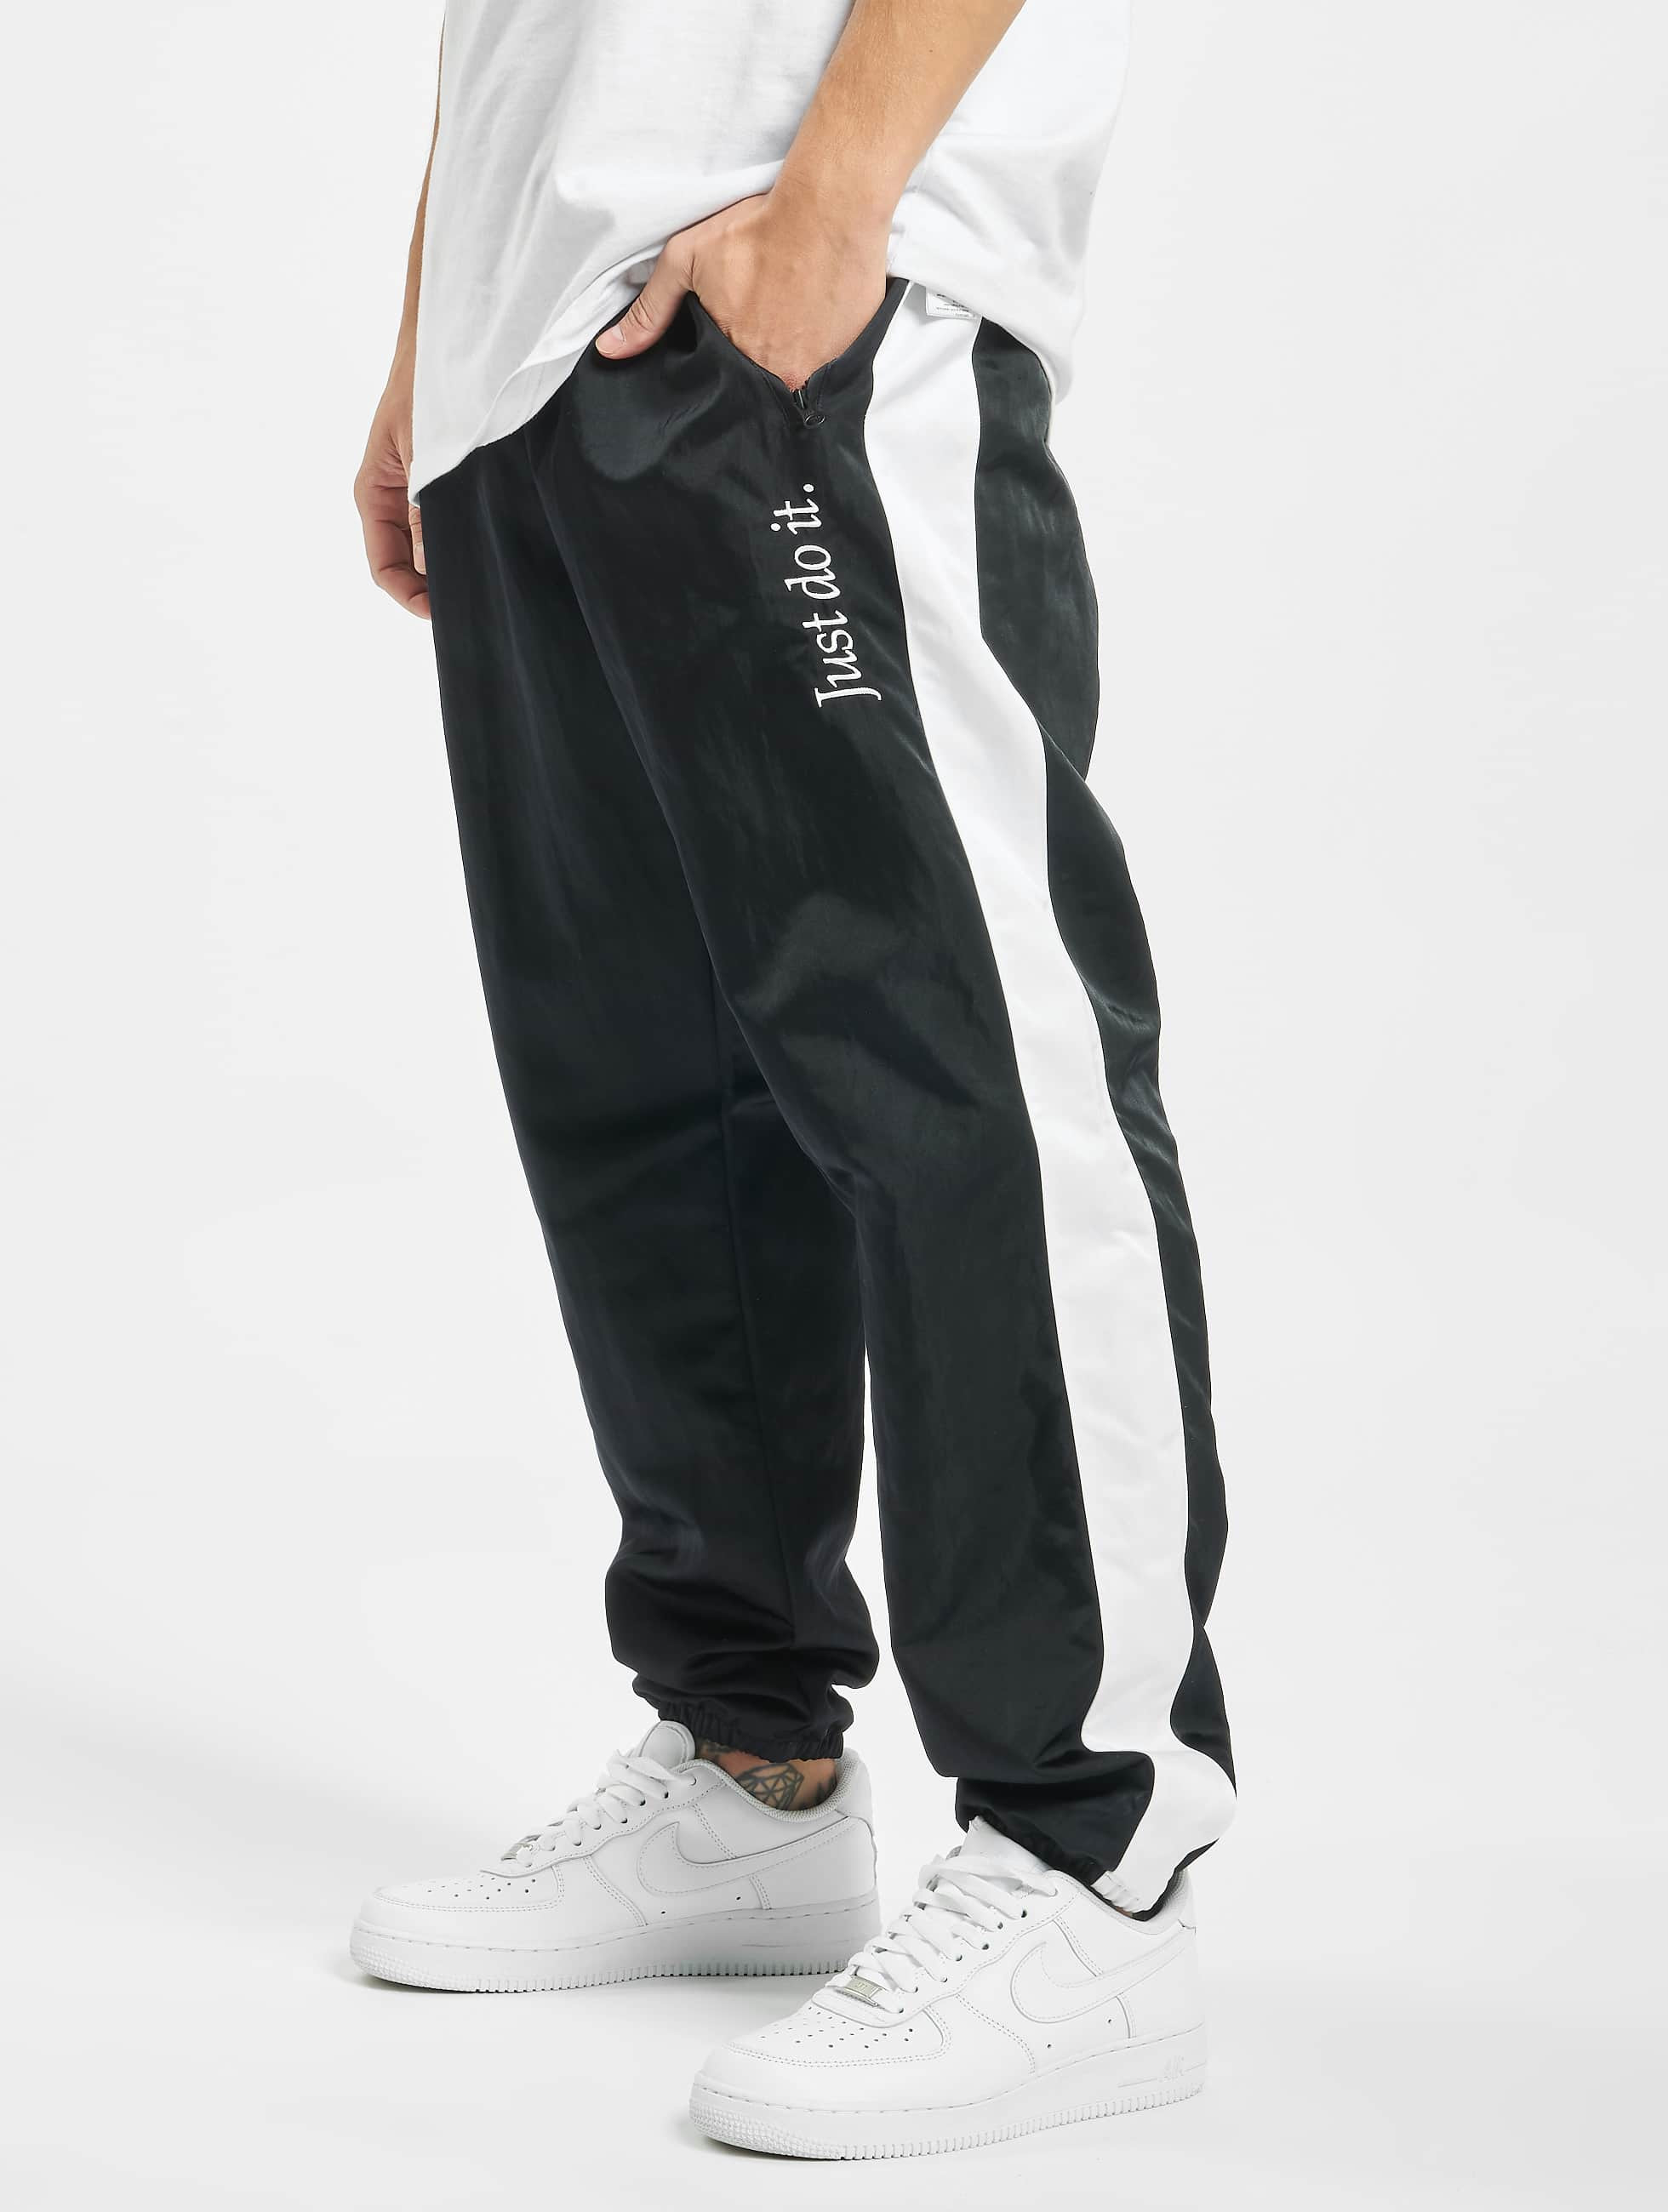 Nike JDI Woven Q5 Sweat Pants BlackWhiteWhite